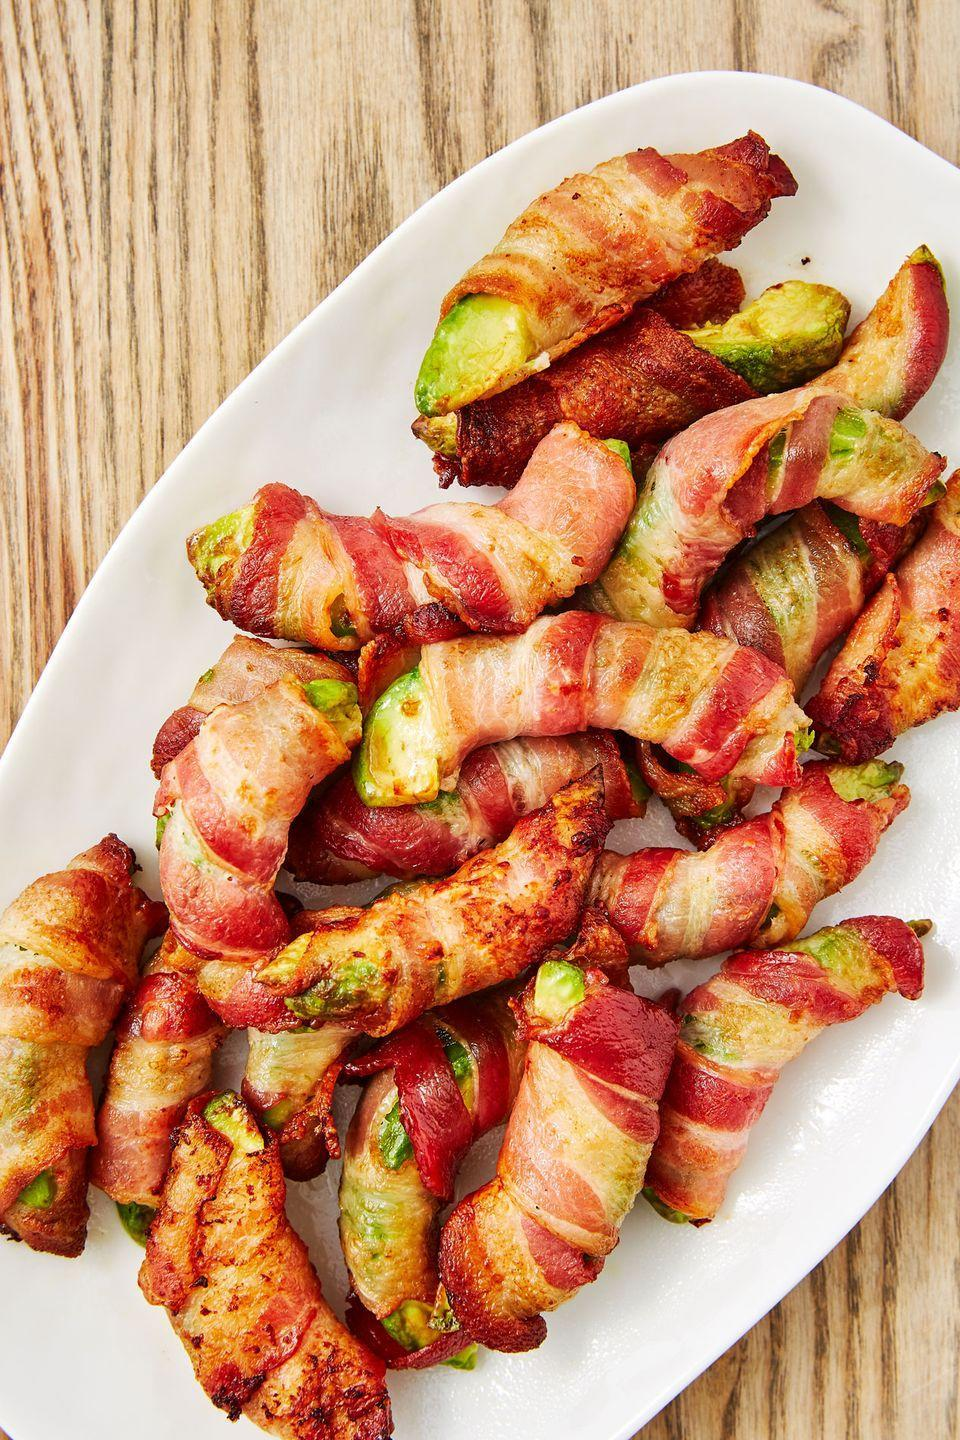 """<p>They're low-carb!! Eat your heart out!!!</p><p>Get the recipe from <a href=""""https://www.delish.com/cooking/recipe-ideas/recipes/a48261/bacon-avocado-fries-recipe/"""" rel=""""nofollow noopener"""" target=""""_blank"""" data-ylk=""""slk:Delish"""" class=""""link rapid-noclick-resp"""">Delish</a>.</p>"""